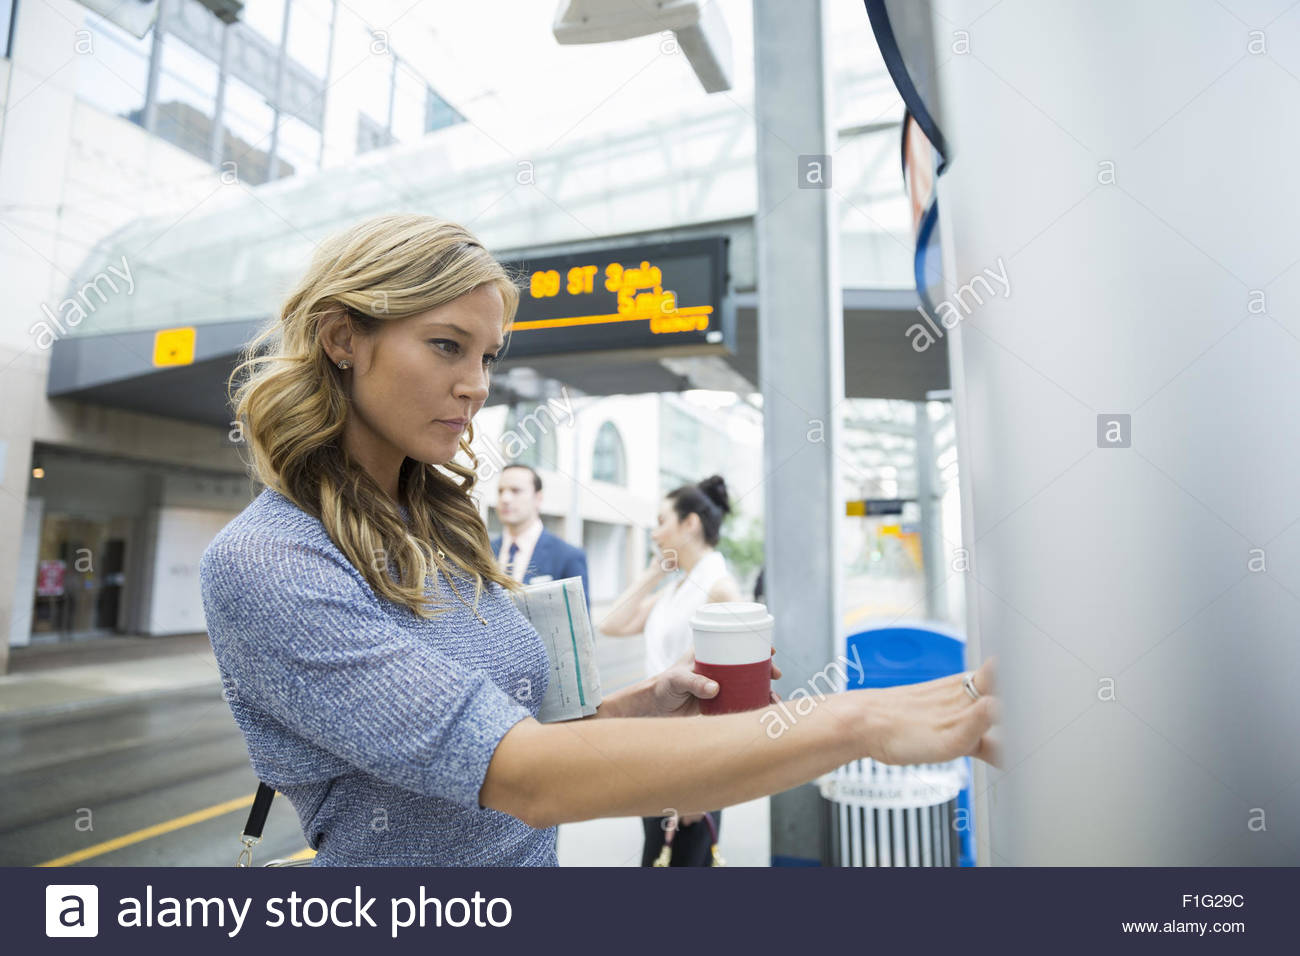 Businesswoman checking schedule at train station - Stock Image